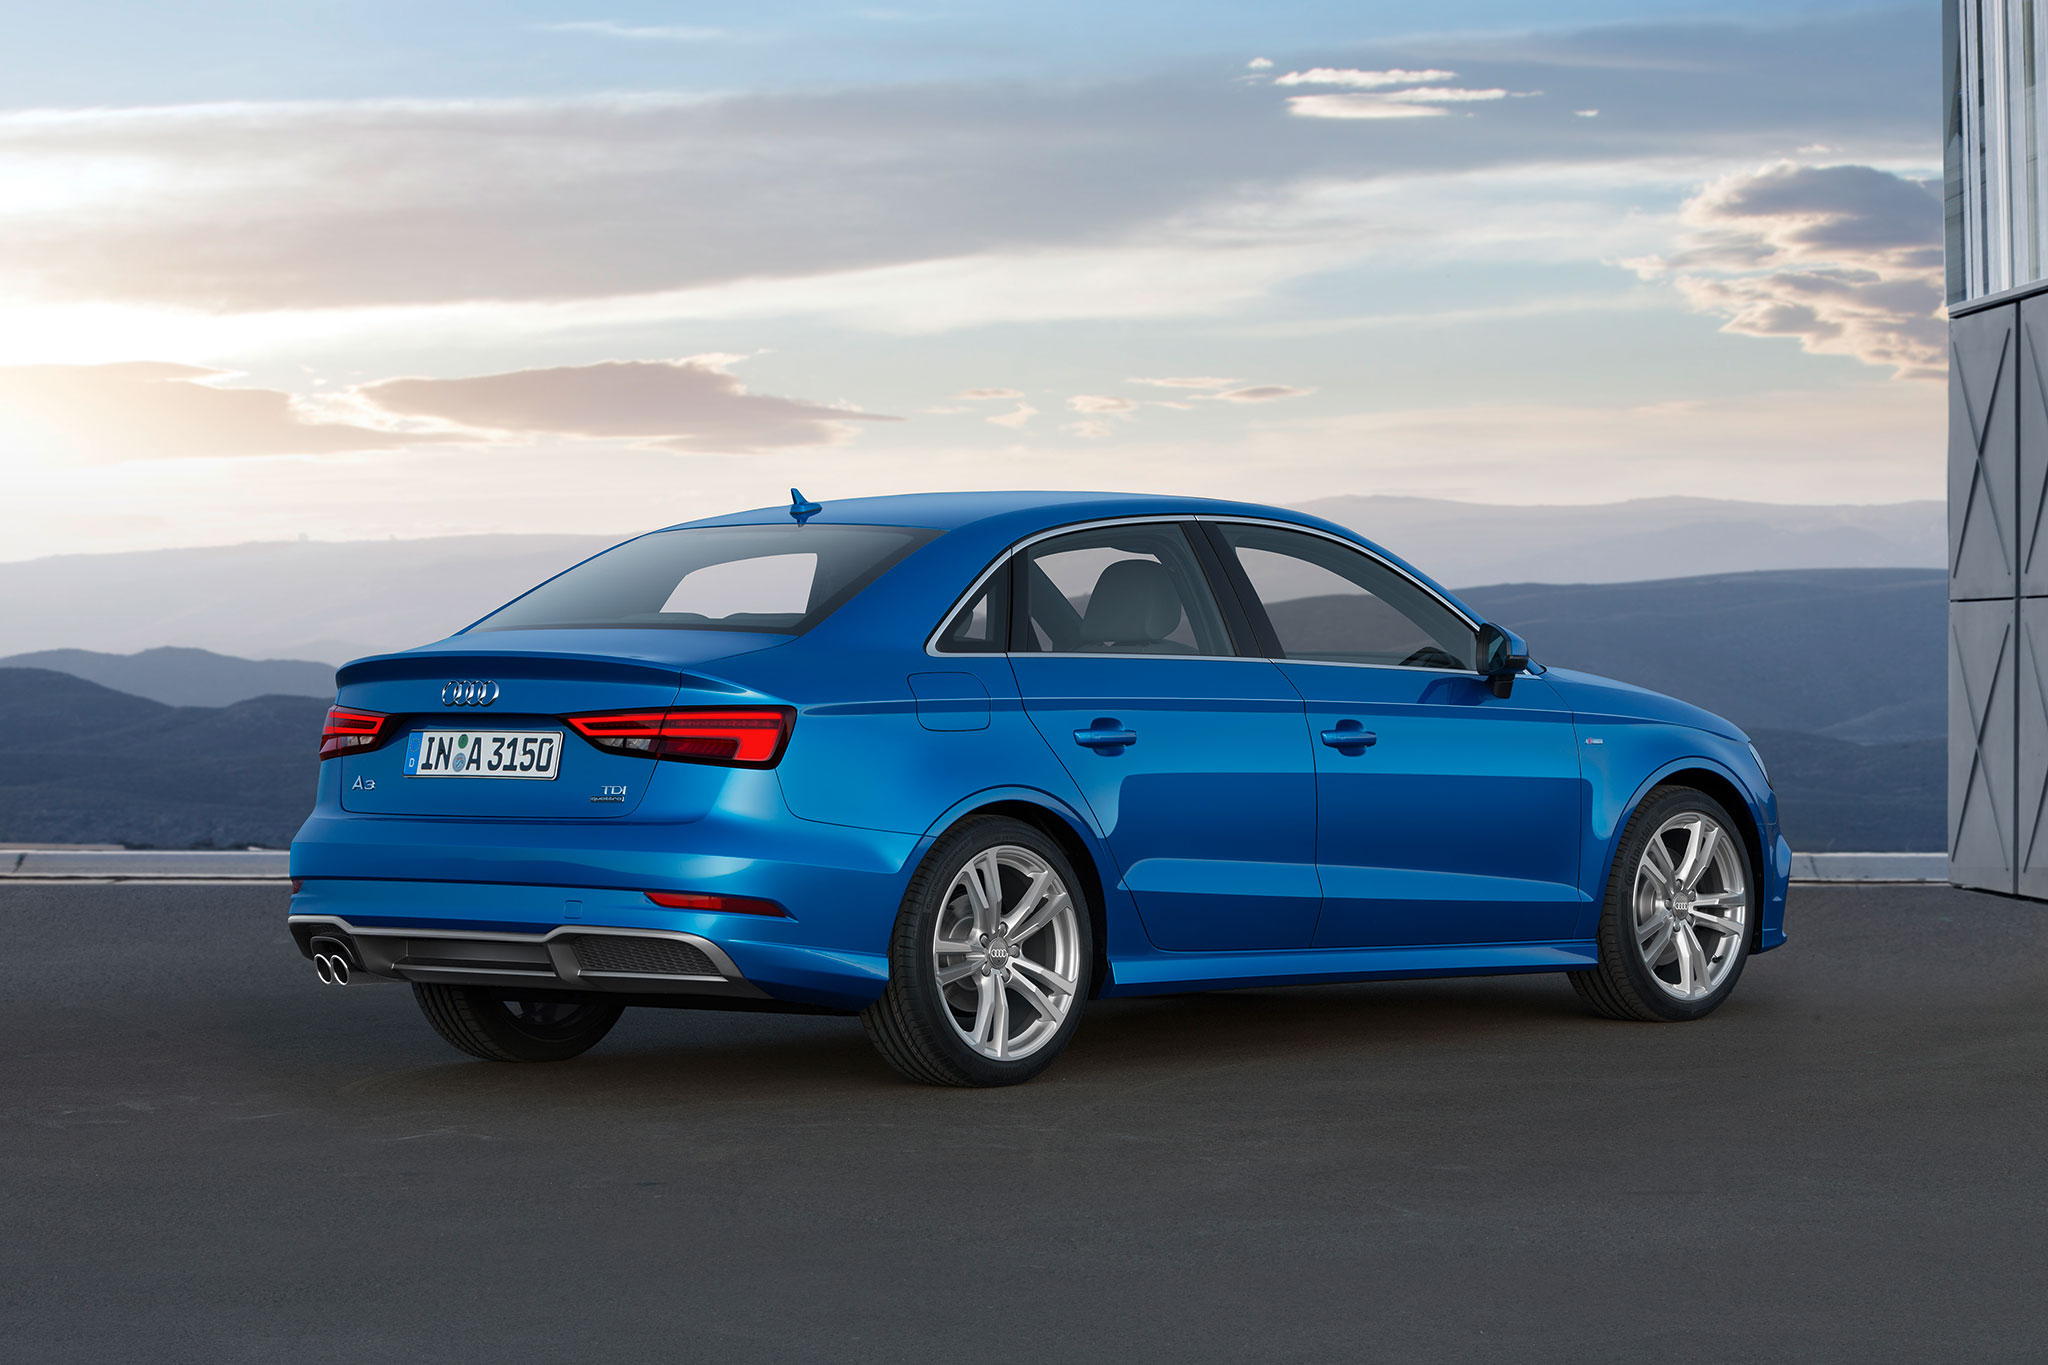 HQ Audi A3 Wallpapers | File 290.48Kb